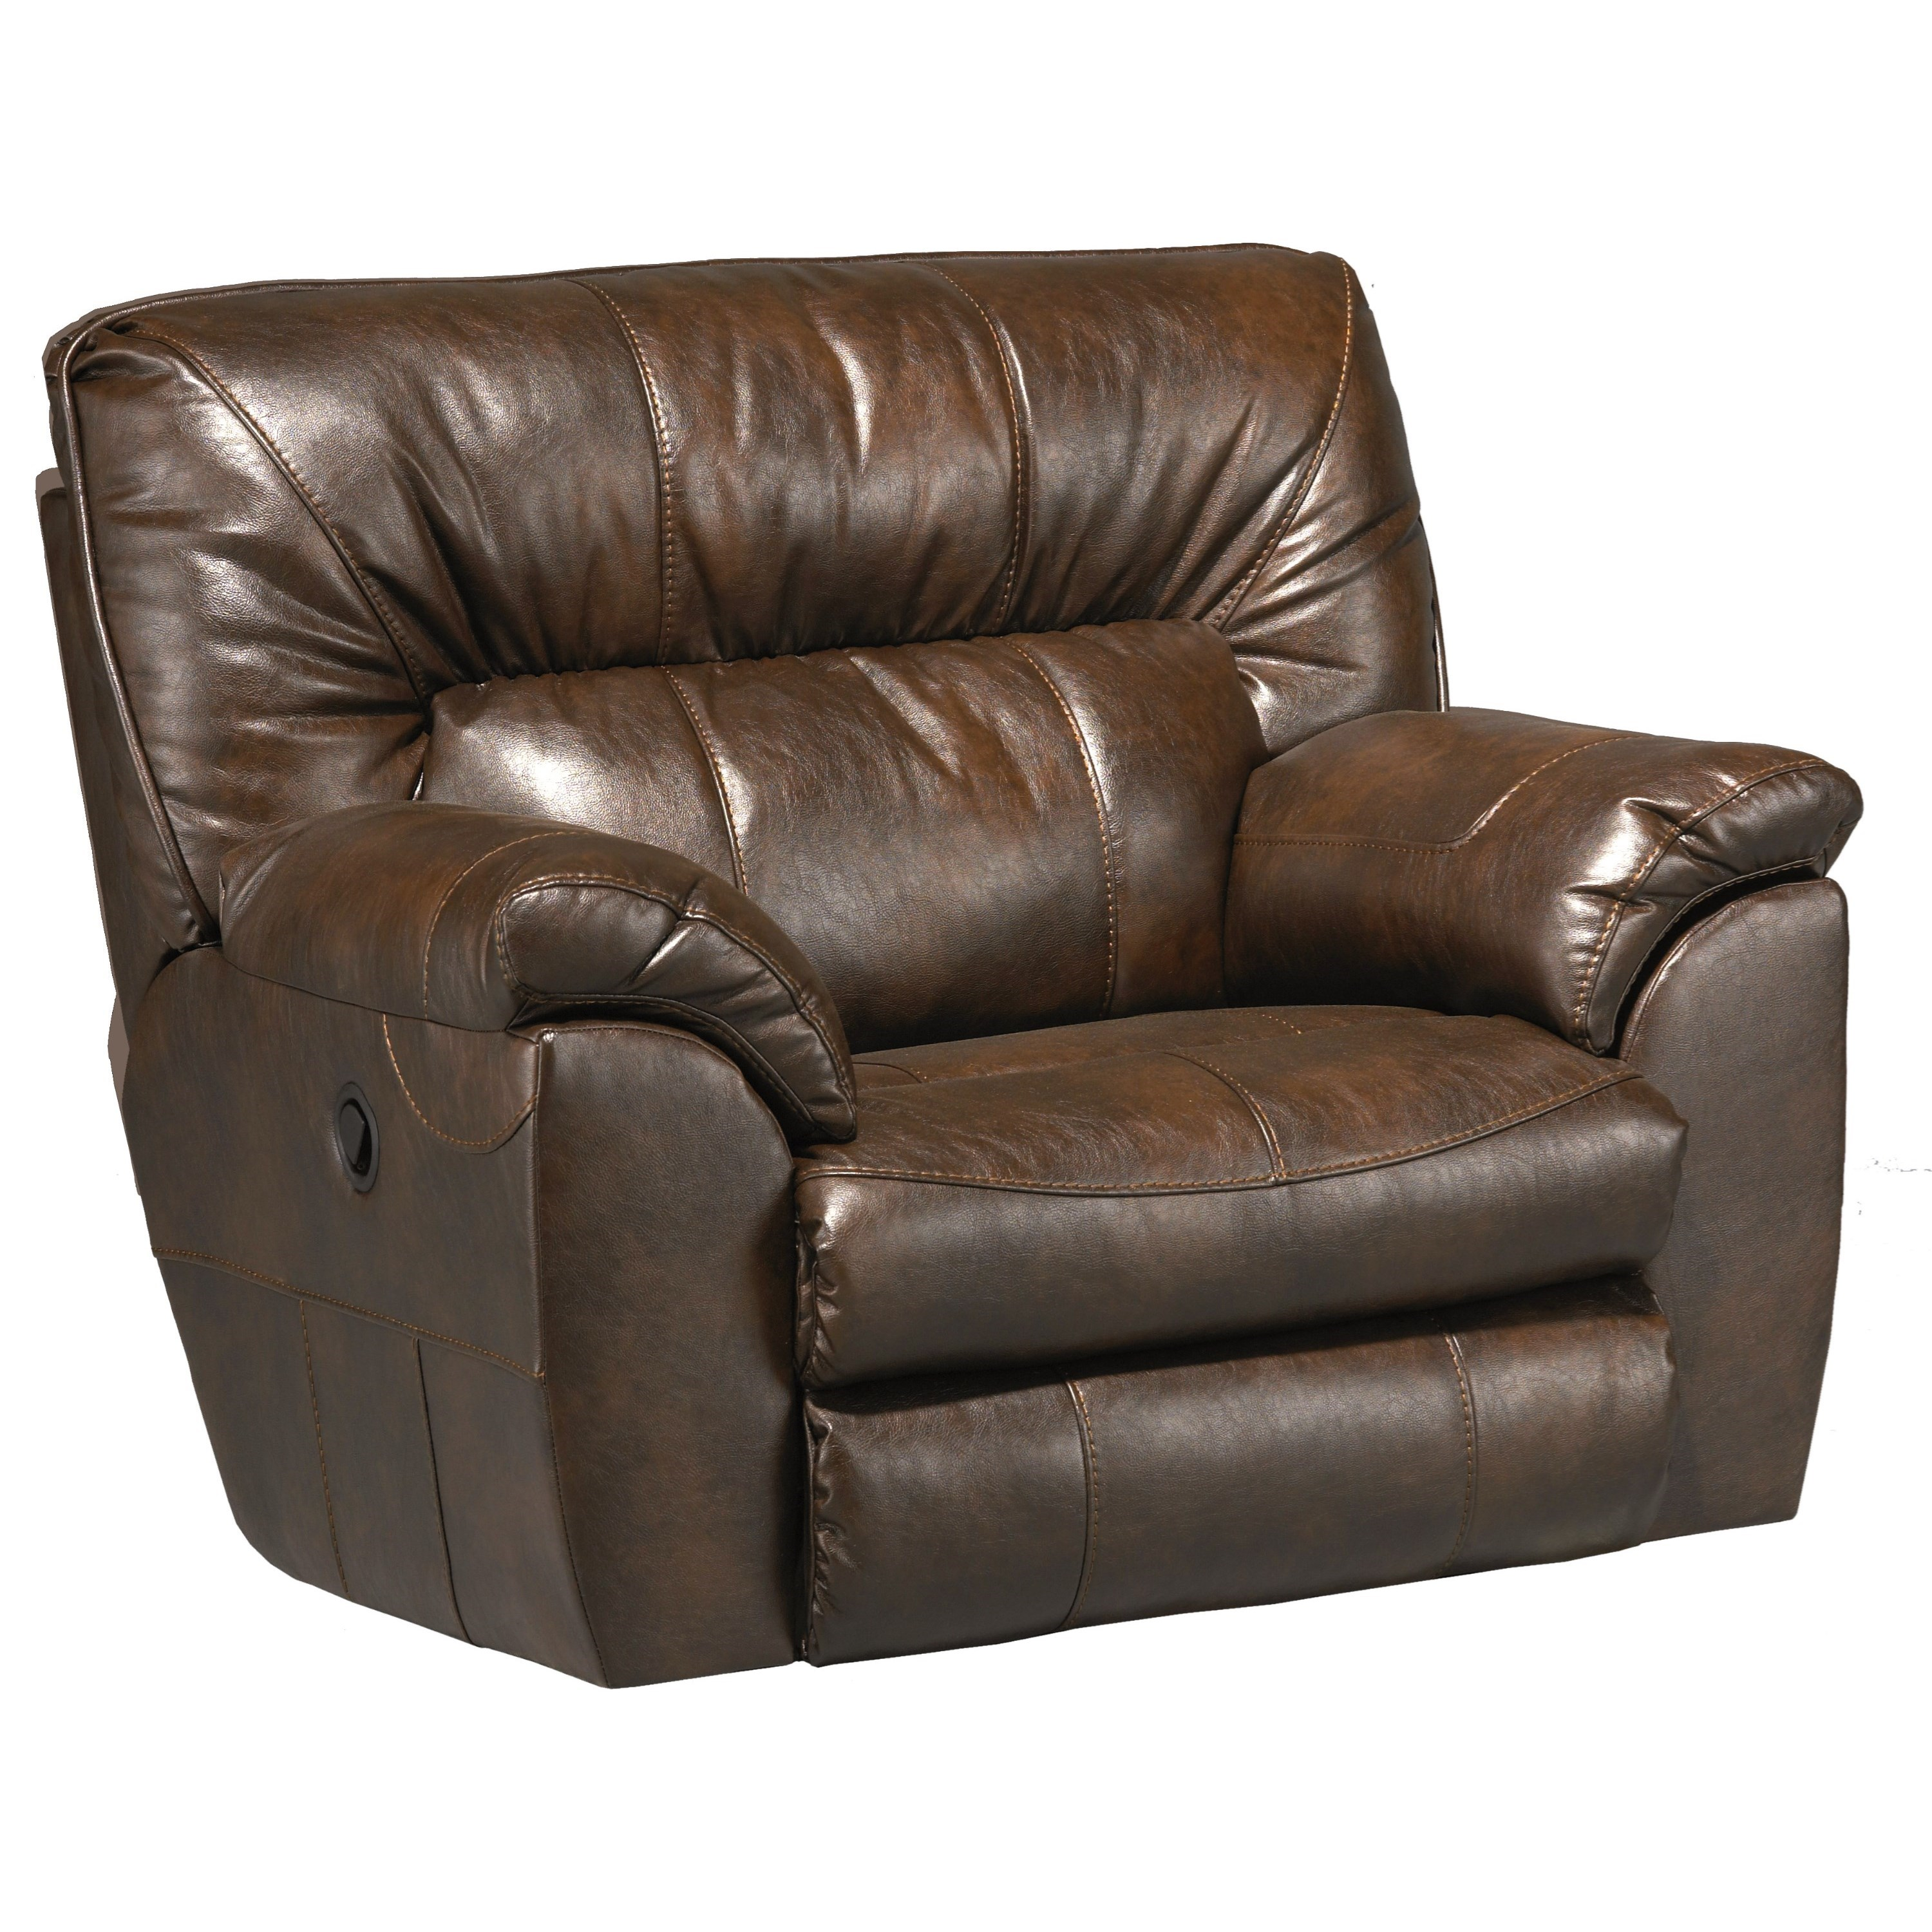 Catnapper nolan extra wide cuddler recliner with casual for Catnapper cuddler chaise rocker recliner